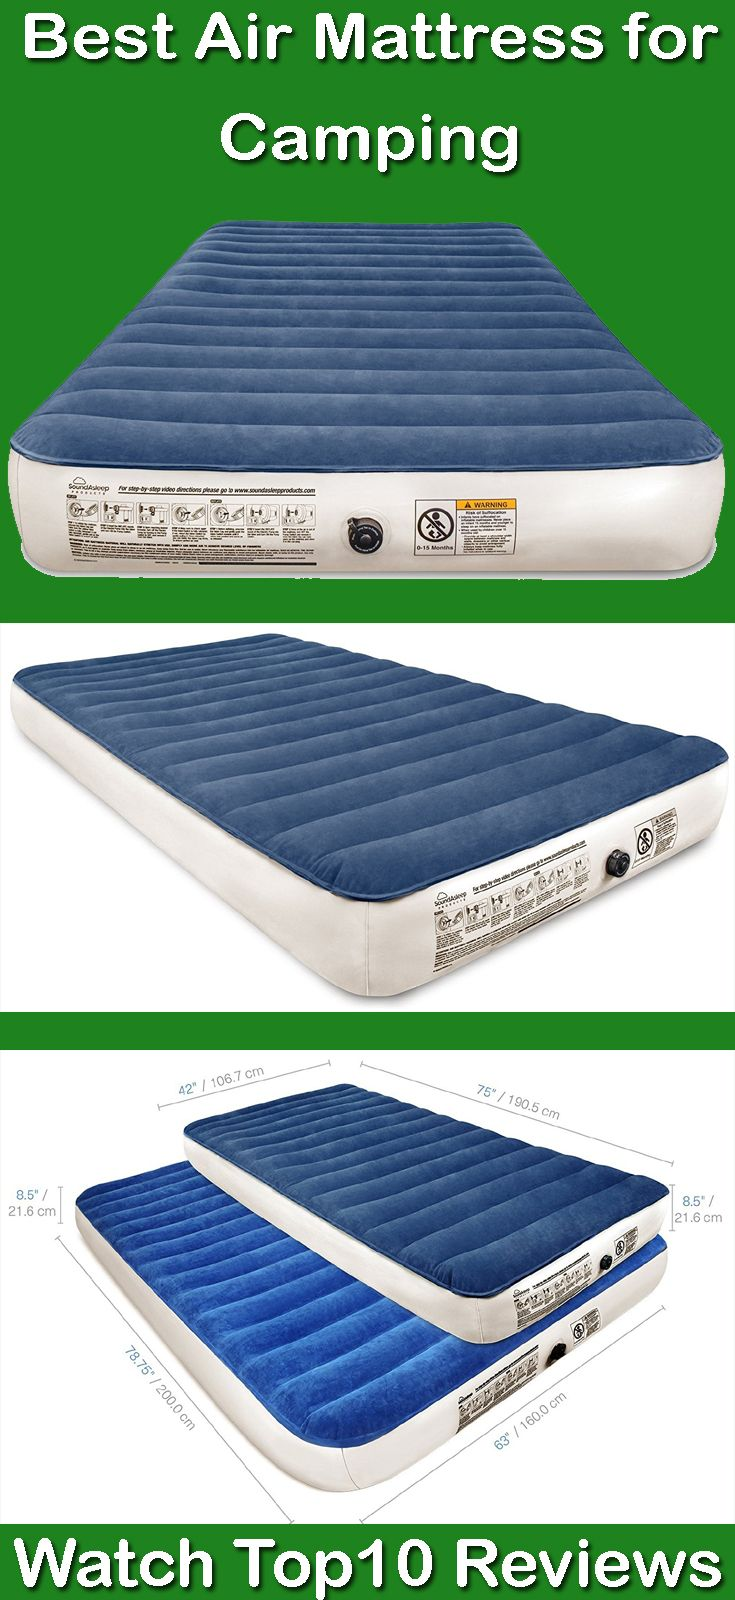 SoundAsleep Camping Series Air Mattress with Included Rechargable